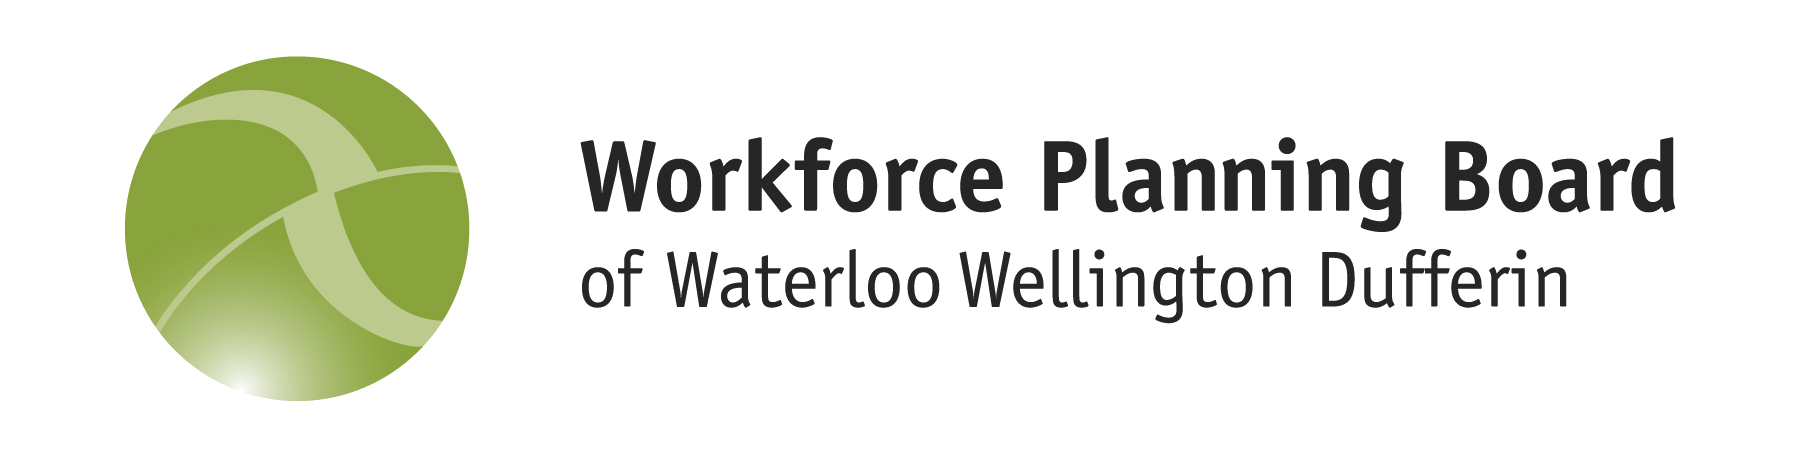 Workforce Planning Board of Wateloo Wellington Dufferin